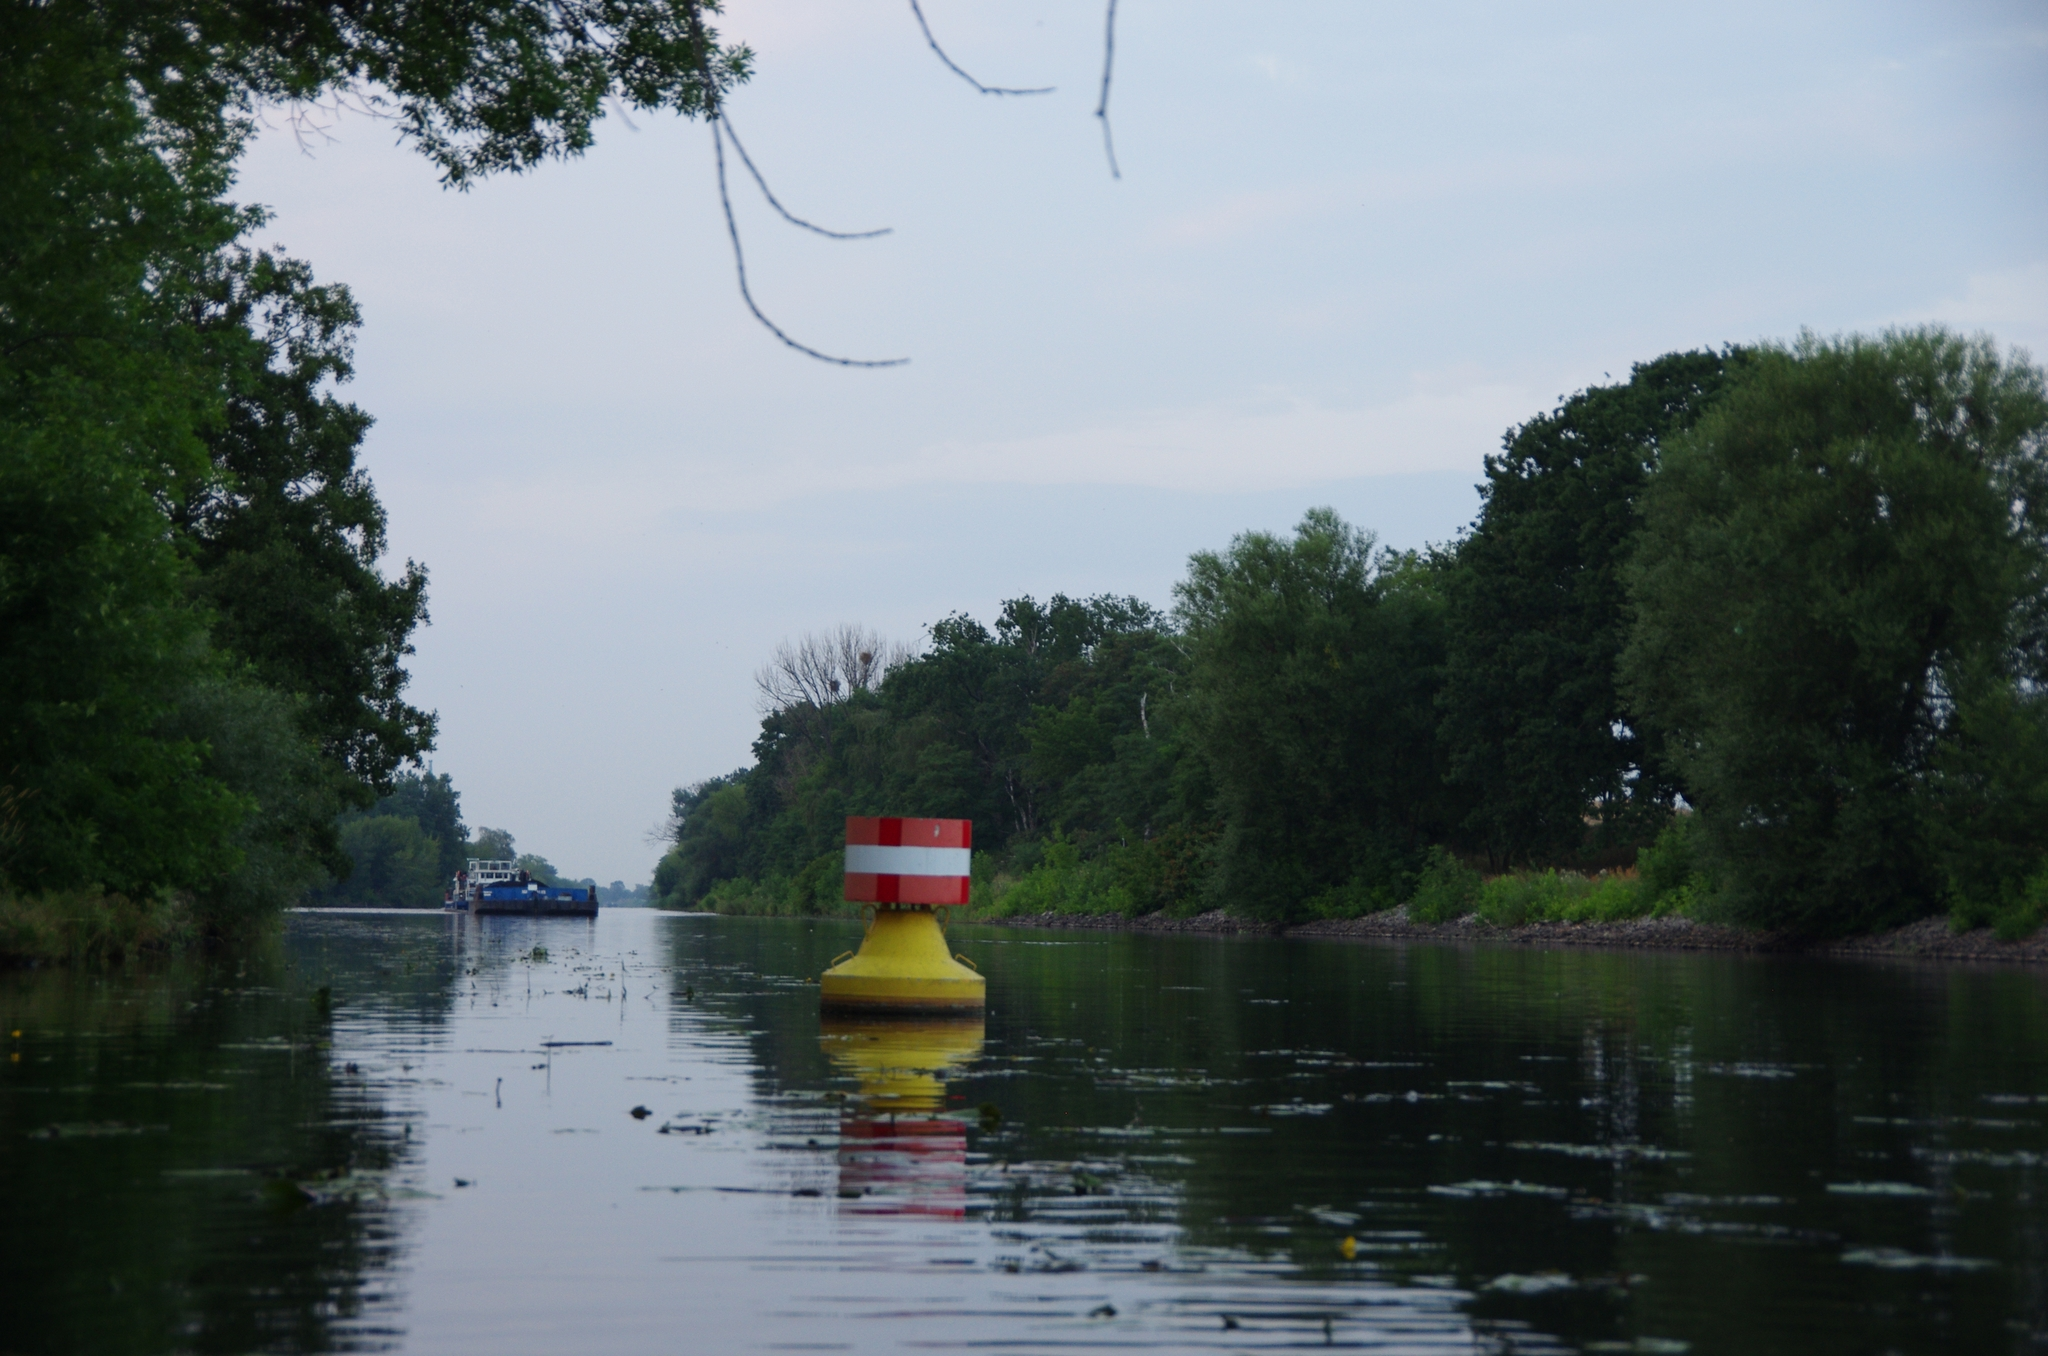 kayaking-odra-east-and-west_19-51-41_25-07-2016